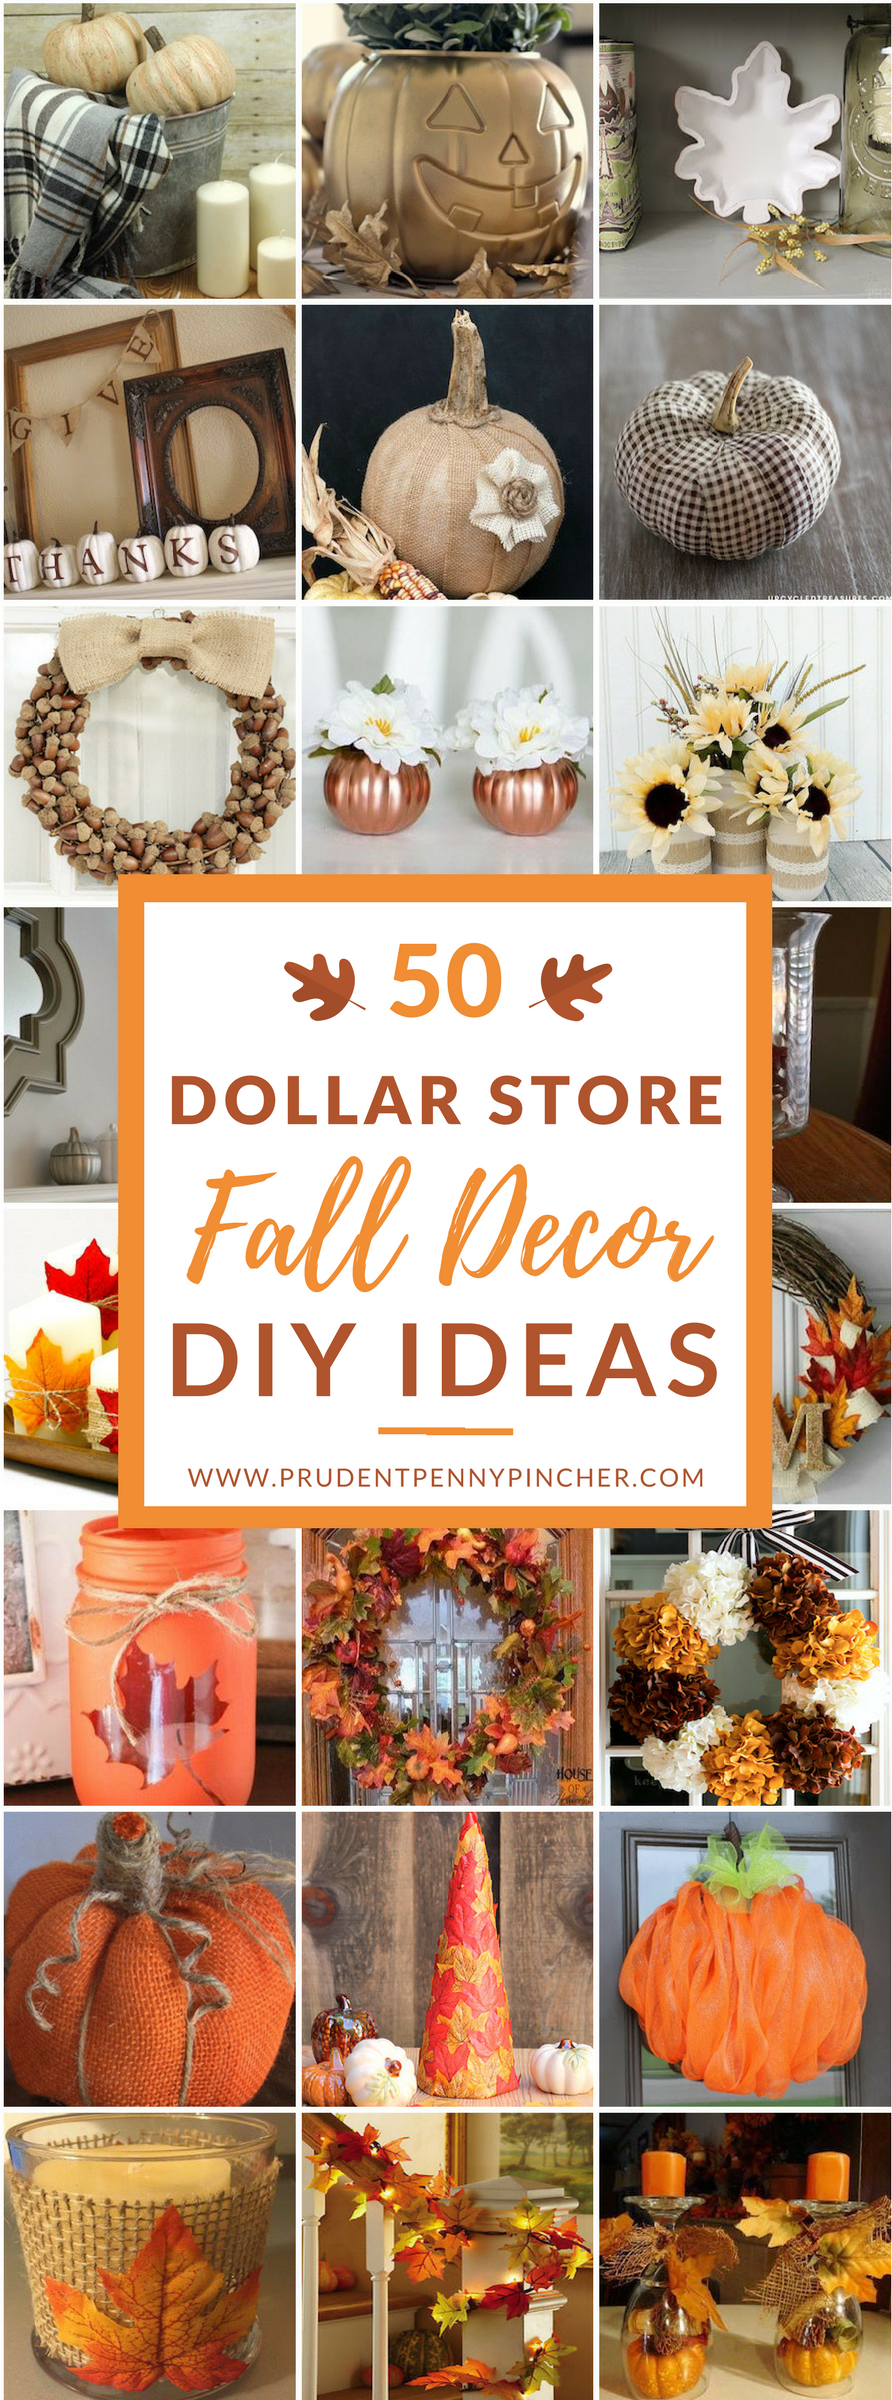 Diy Fall Decor Part - 23: 50 Dollar Store Fall Decor DIY Ideas